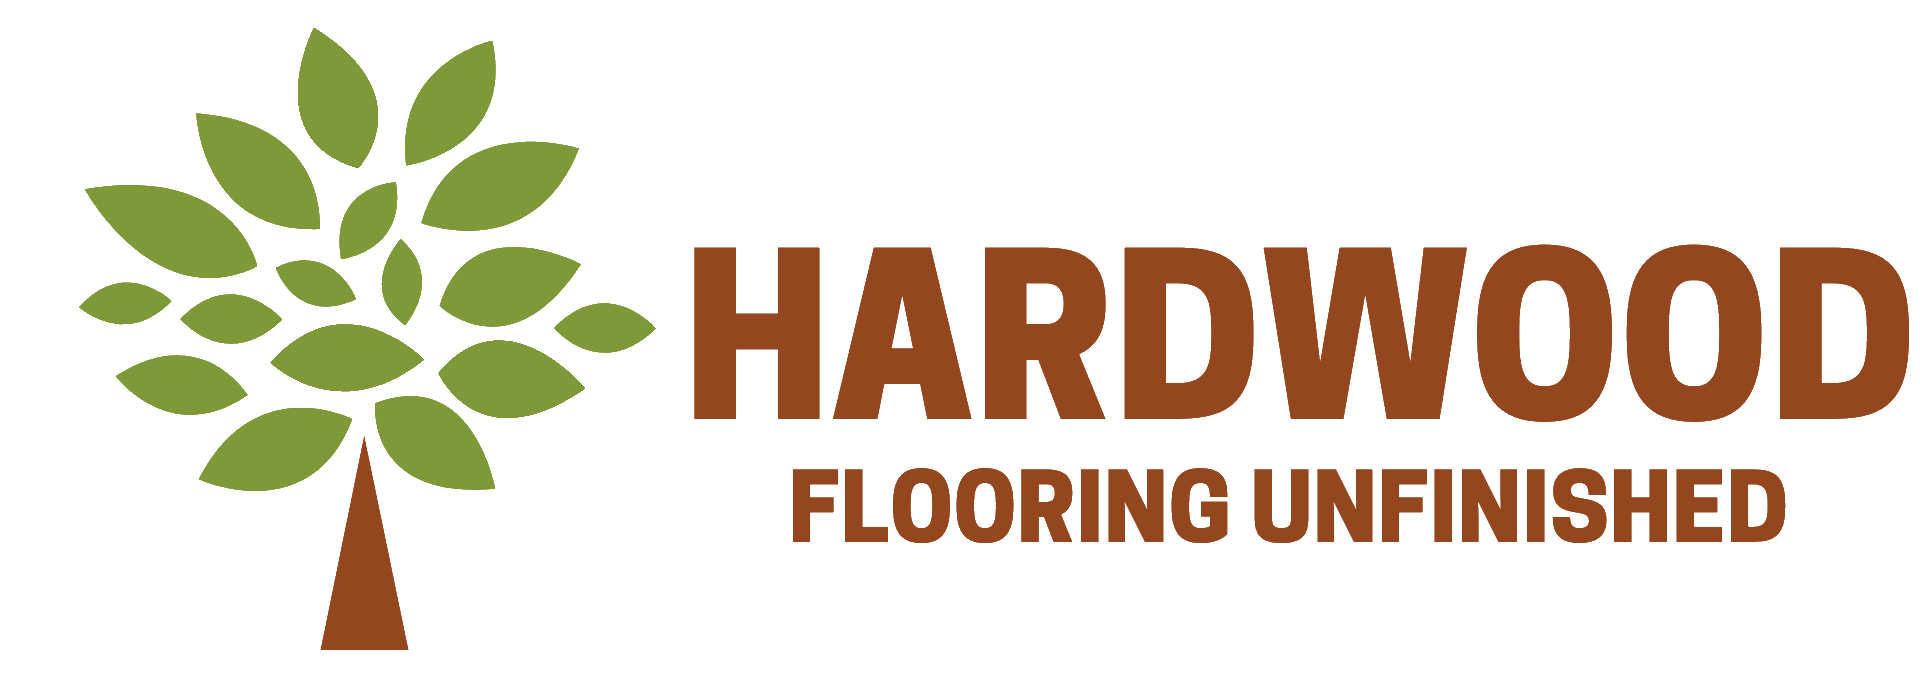 Hardwood Flooring UNFINISHED